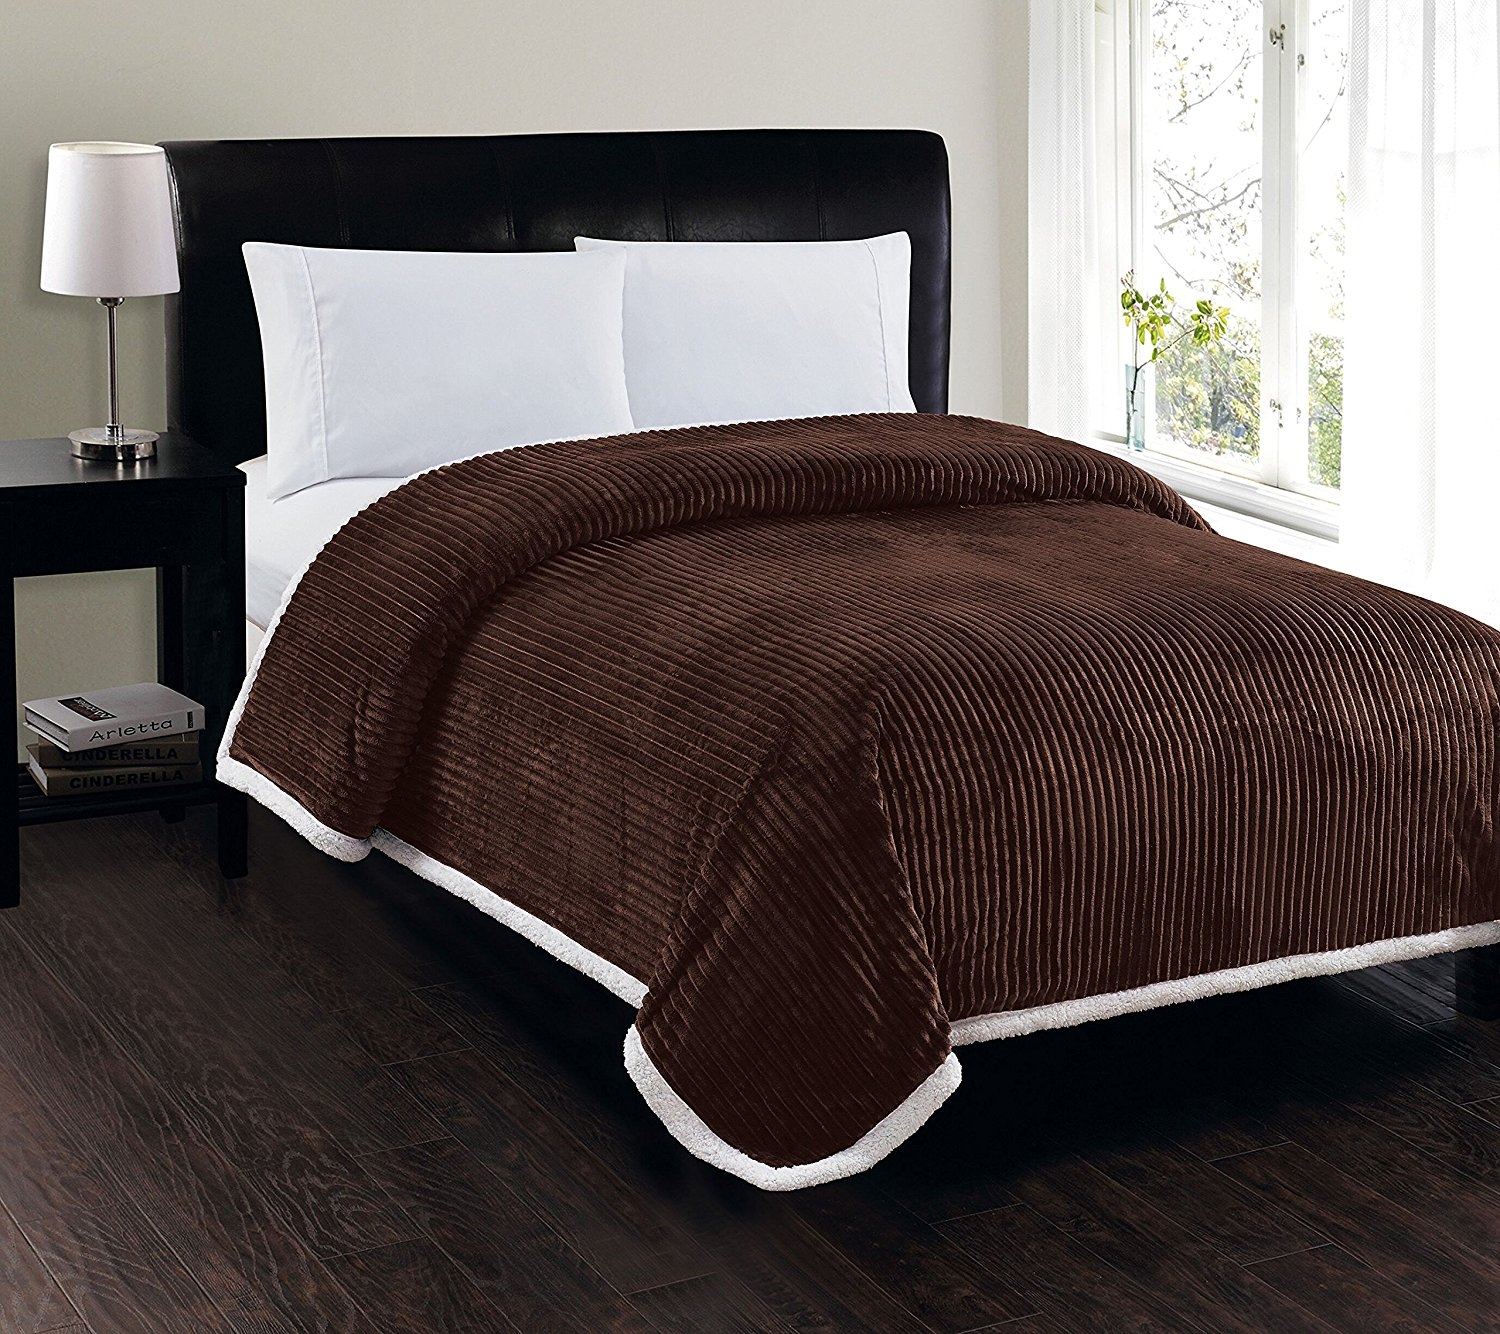 Soft Plush Reversible Corduroy   Sherpa Lined Oversized Bed Blanket for Bedroom or... by Plazatex